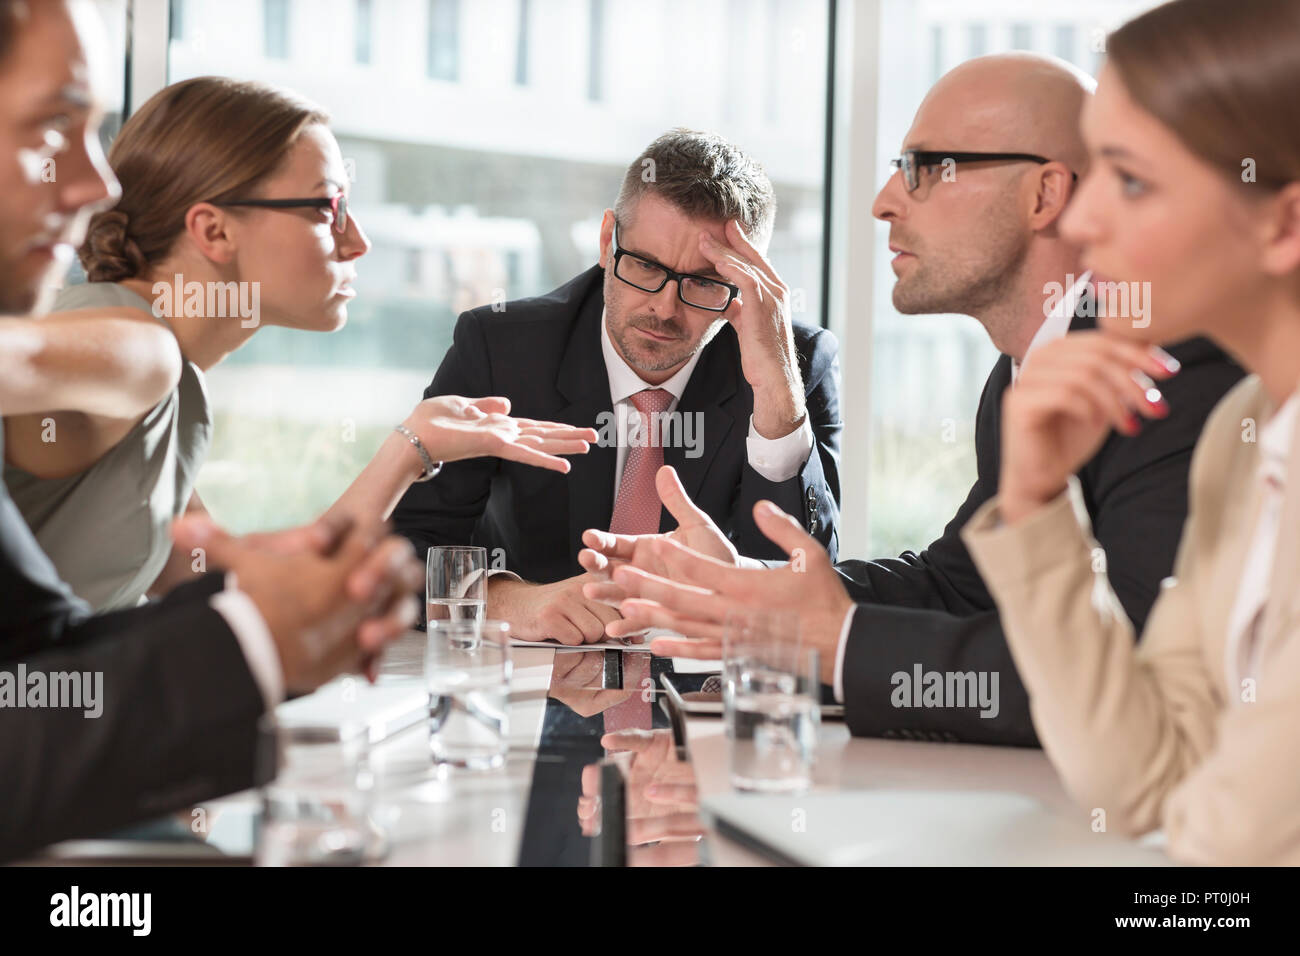 Poland, Warzawa, group of five businessmen in disagreement - Stock Image